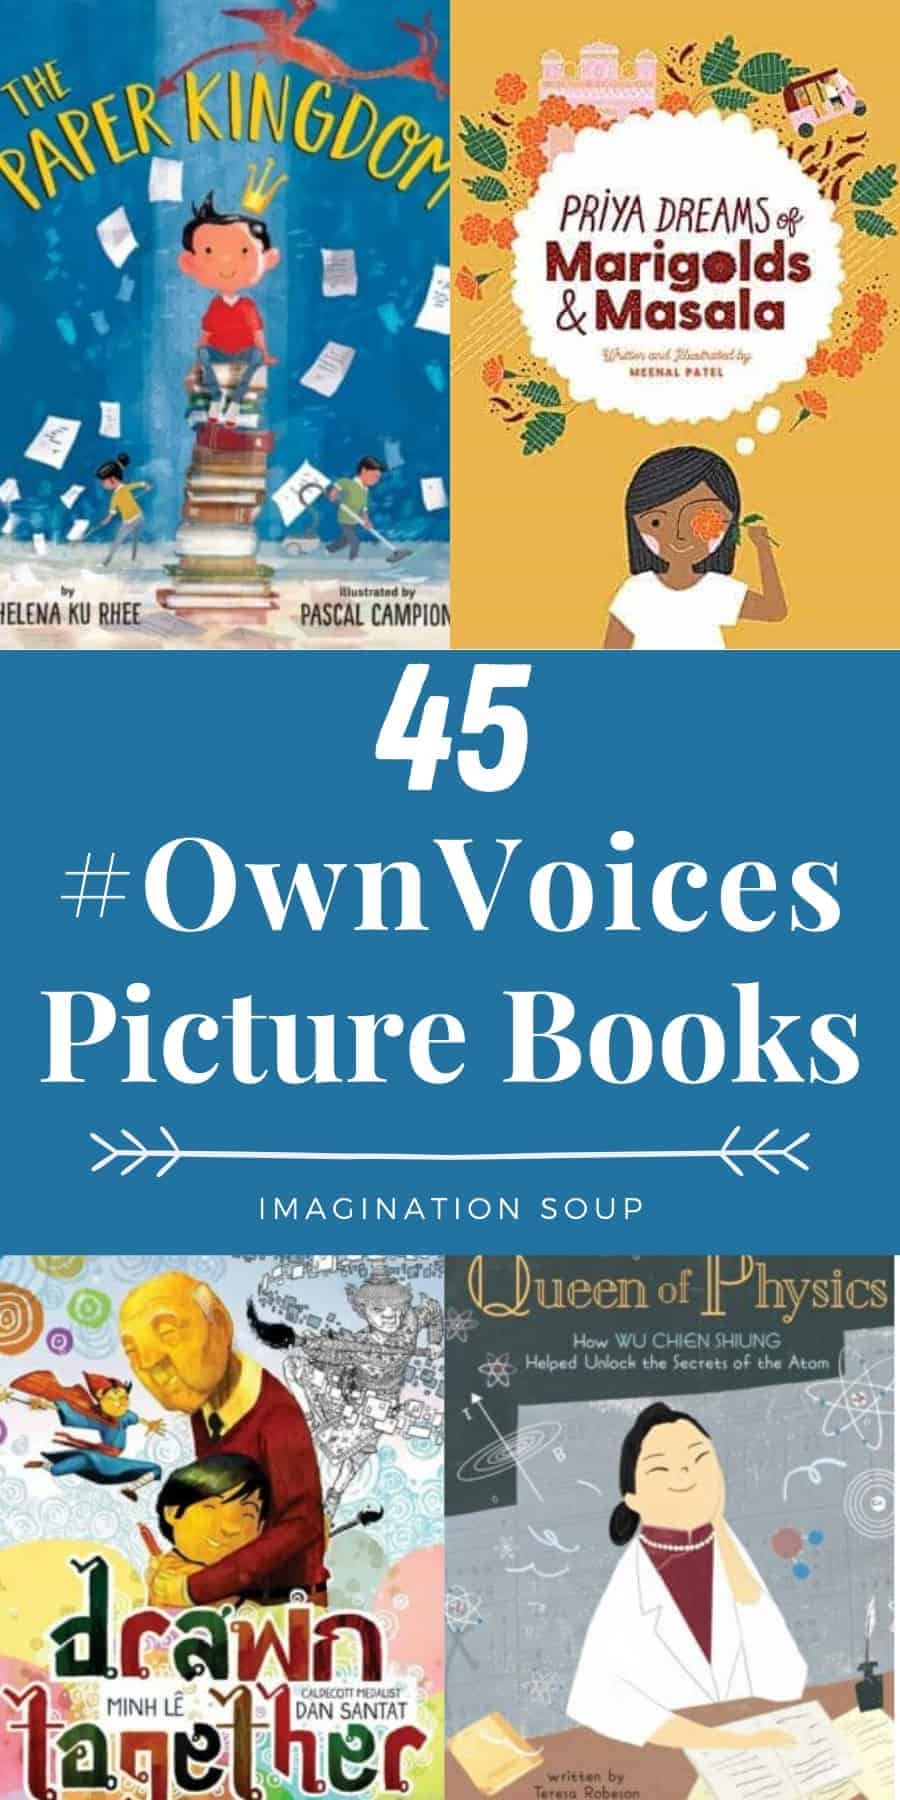 45 favorite #ownvoices diverse picture books